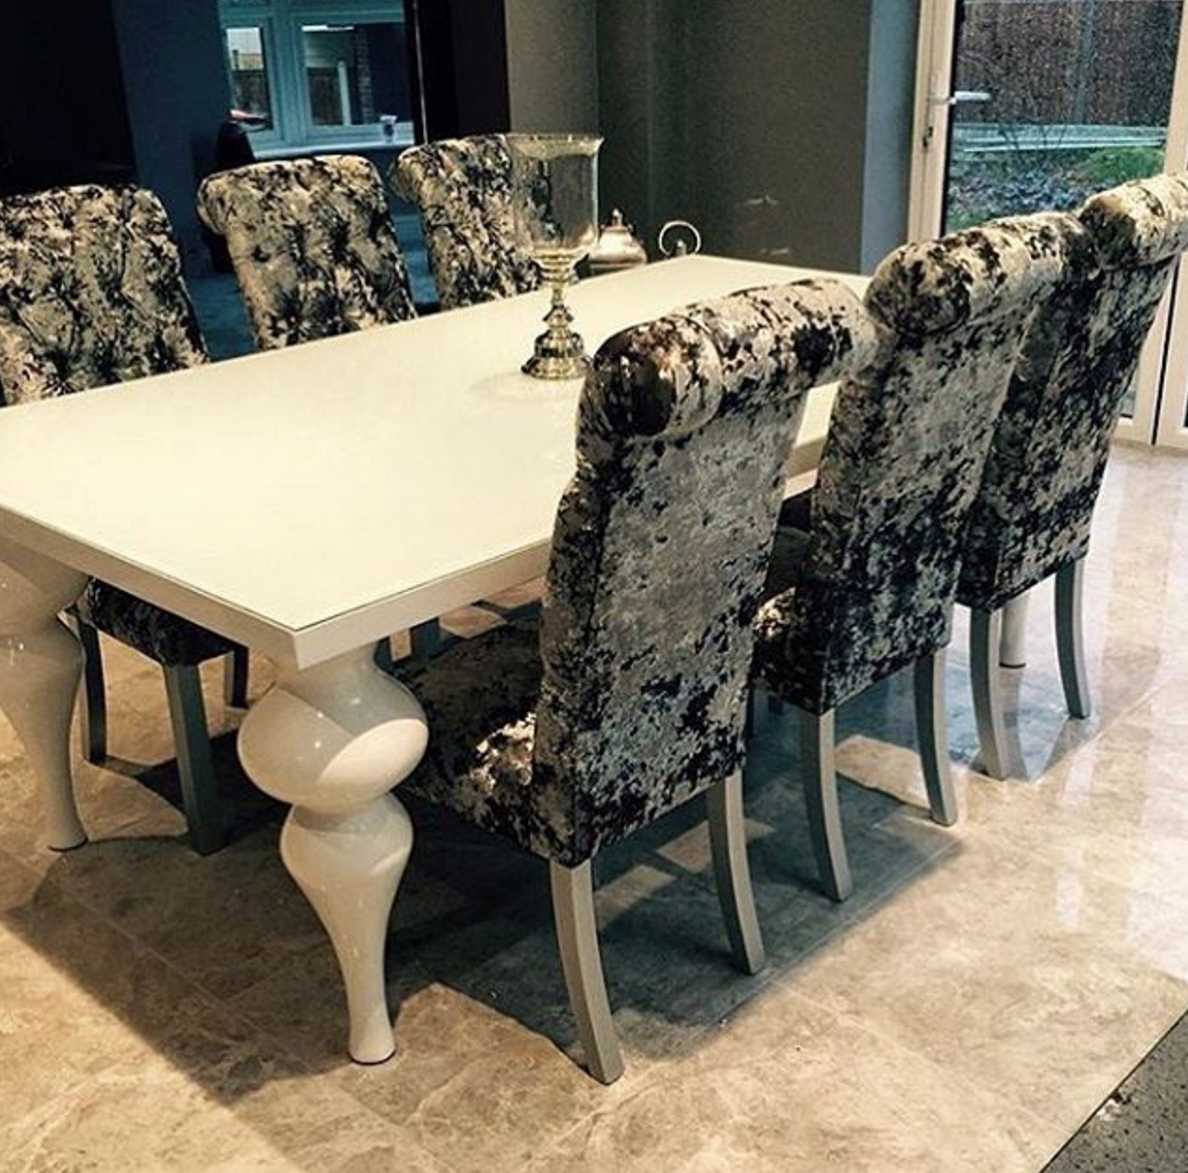 Tides Home \u0026 Garden on Twitter \ This beautiful white hi gloss dining table with crushed velvet dining chairs available now. //t.co/FEfiEwgdFc ... & Tides Home \u0026 Garden on Twitter: \